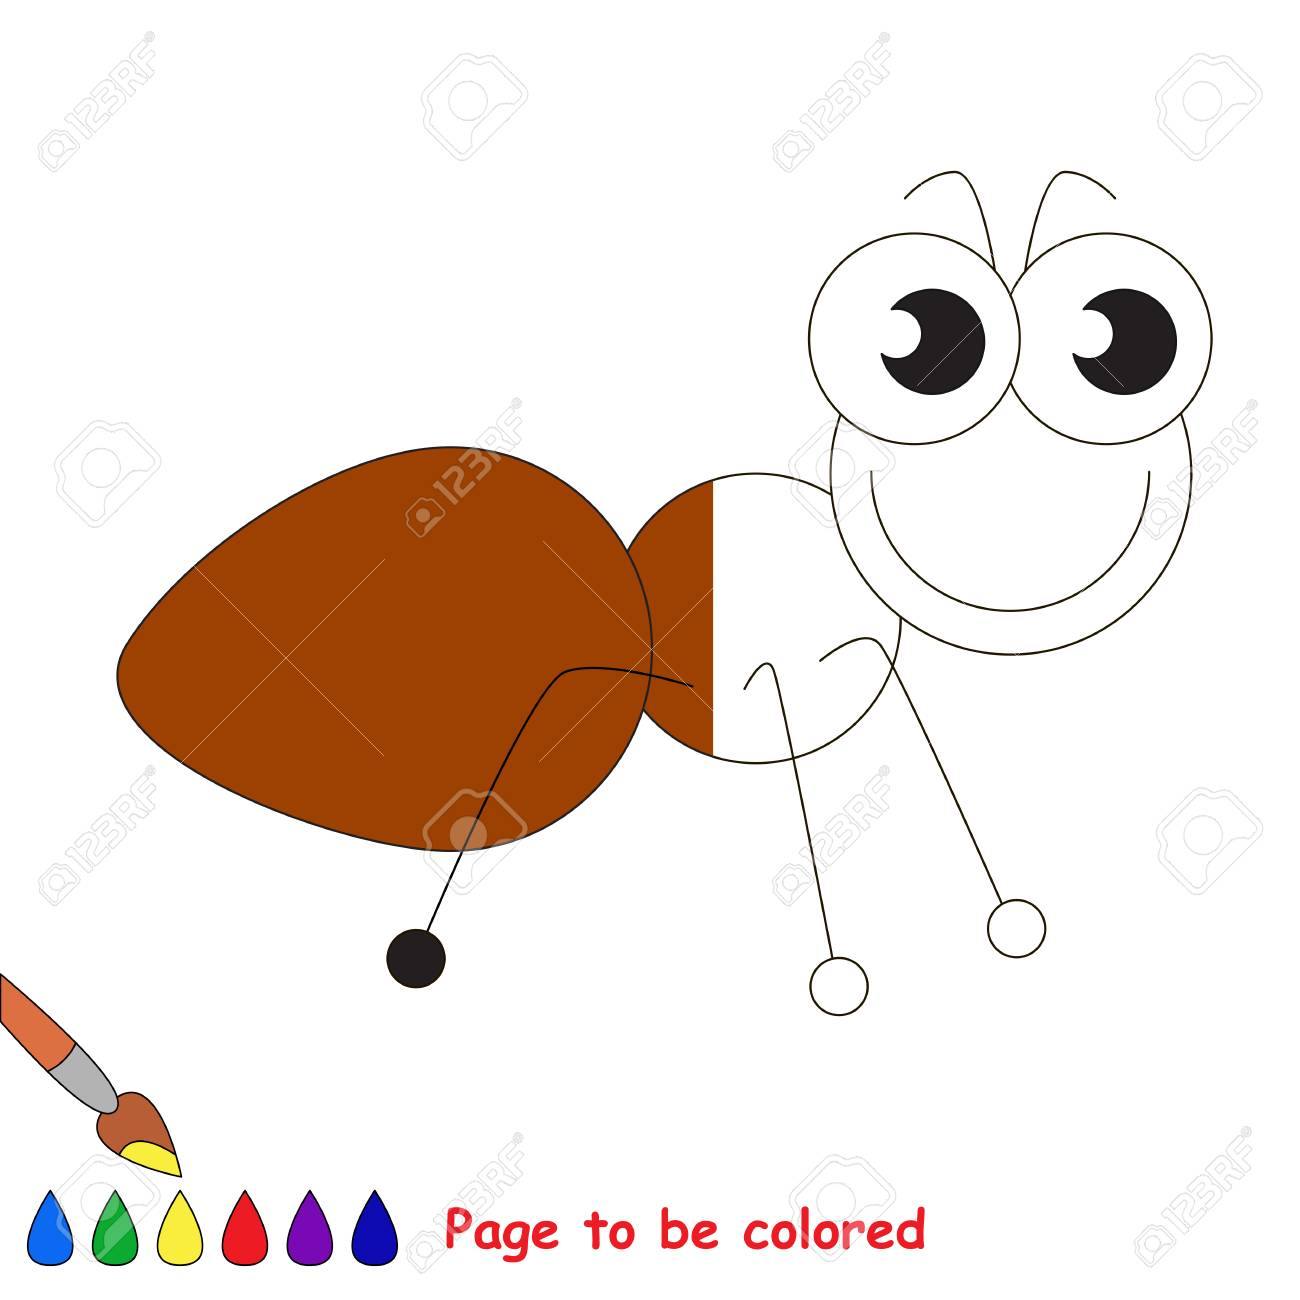 Brown Ant To Be Colored The Coloring Book To Educate Preschool